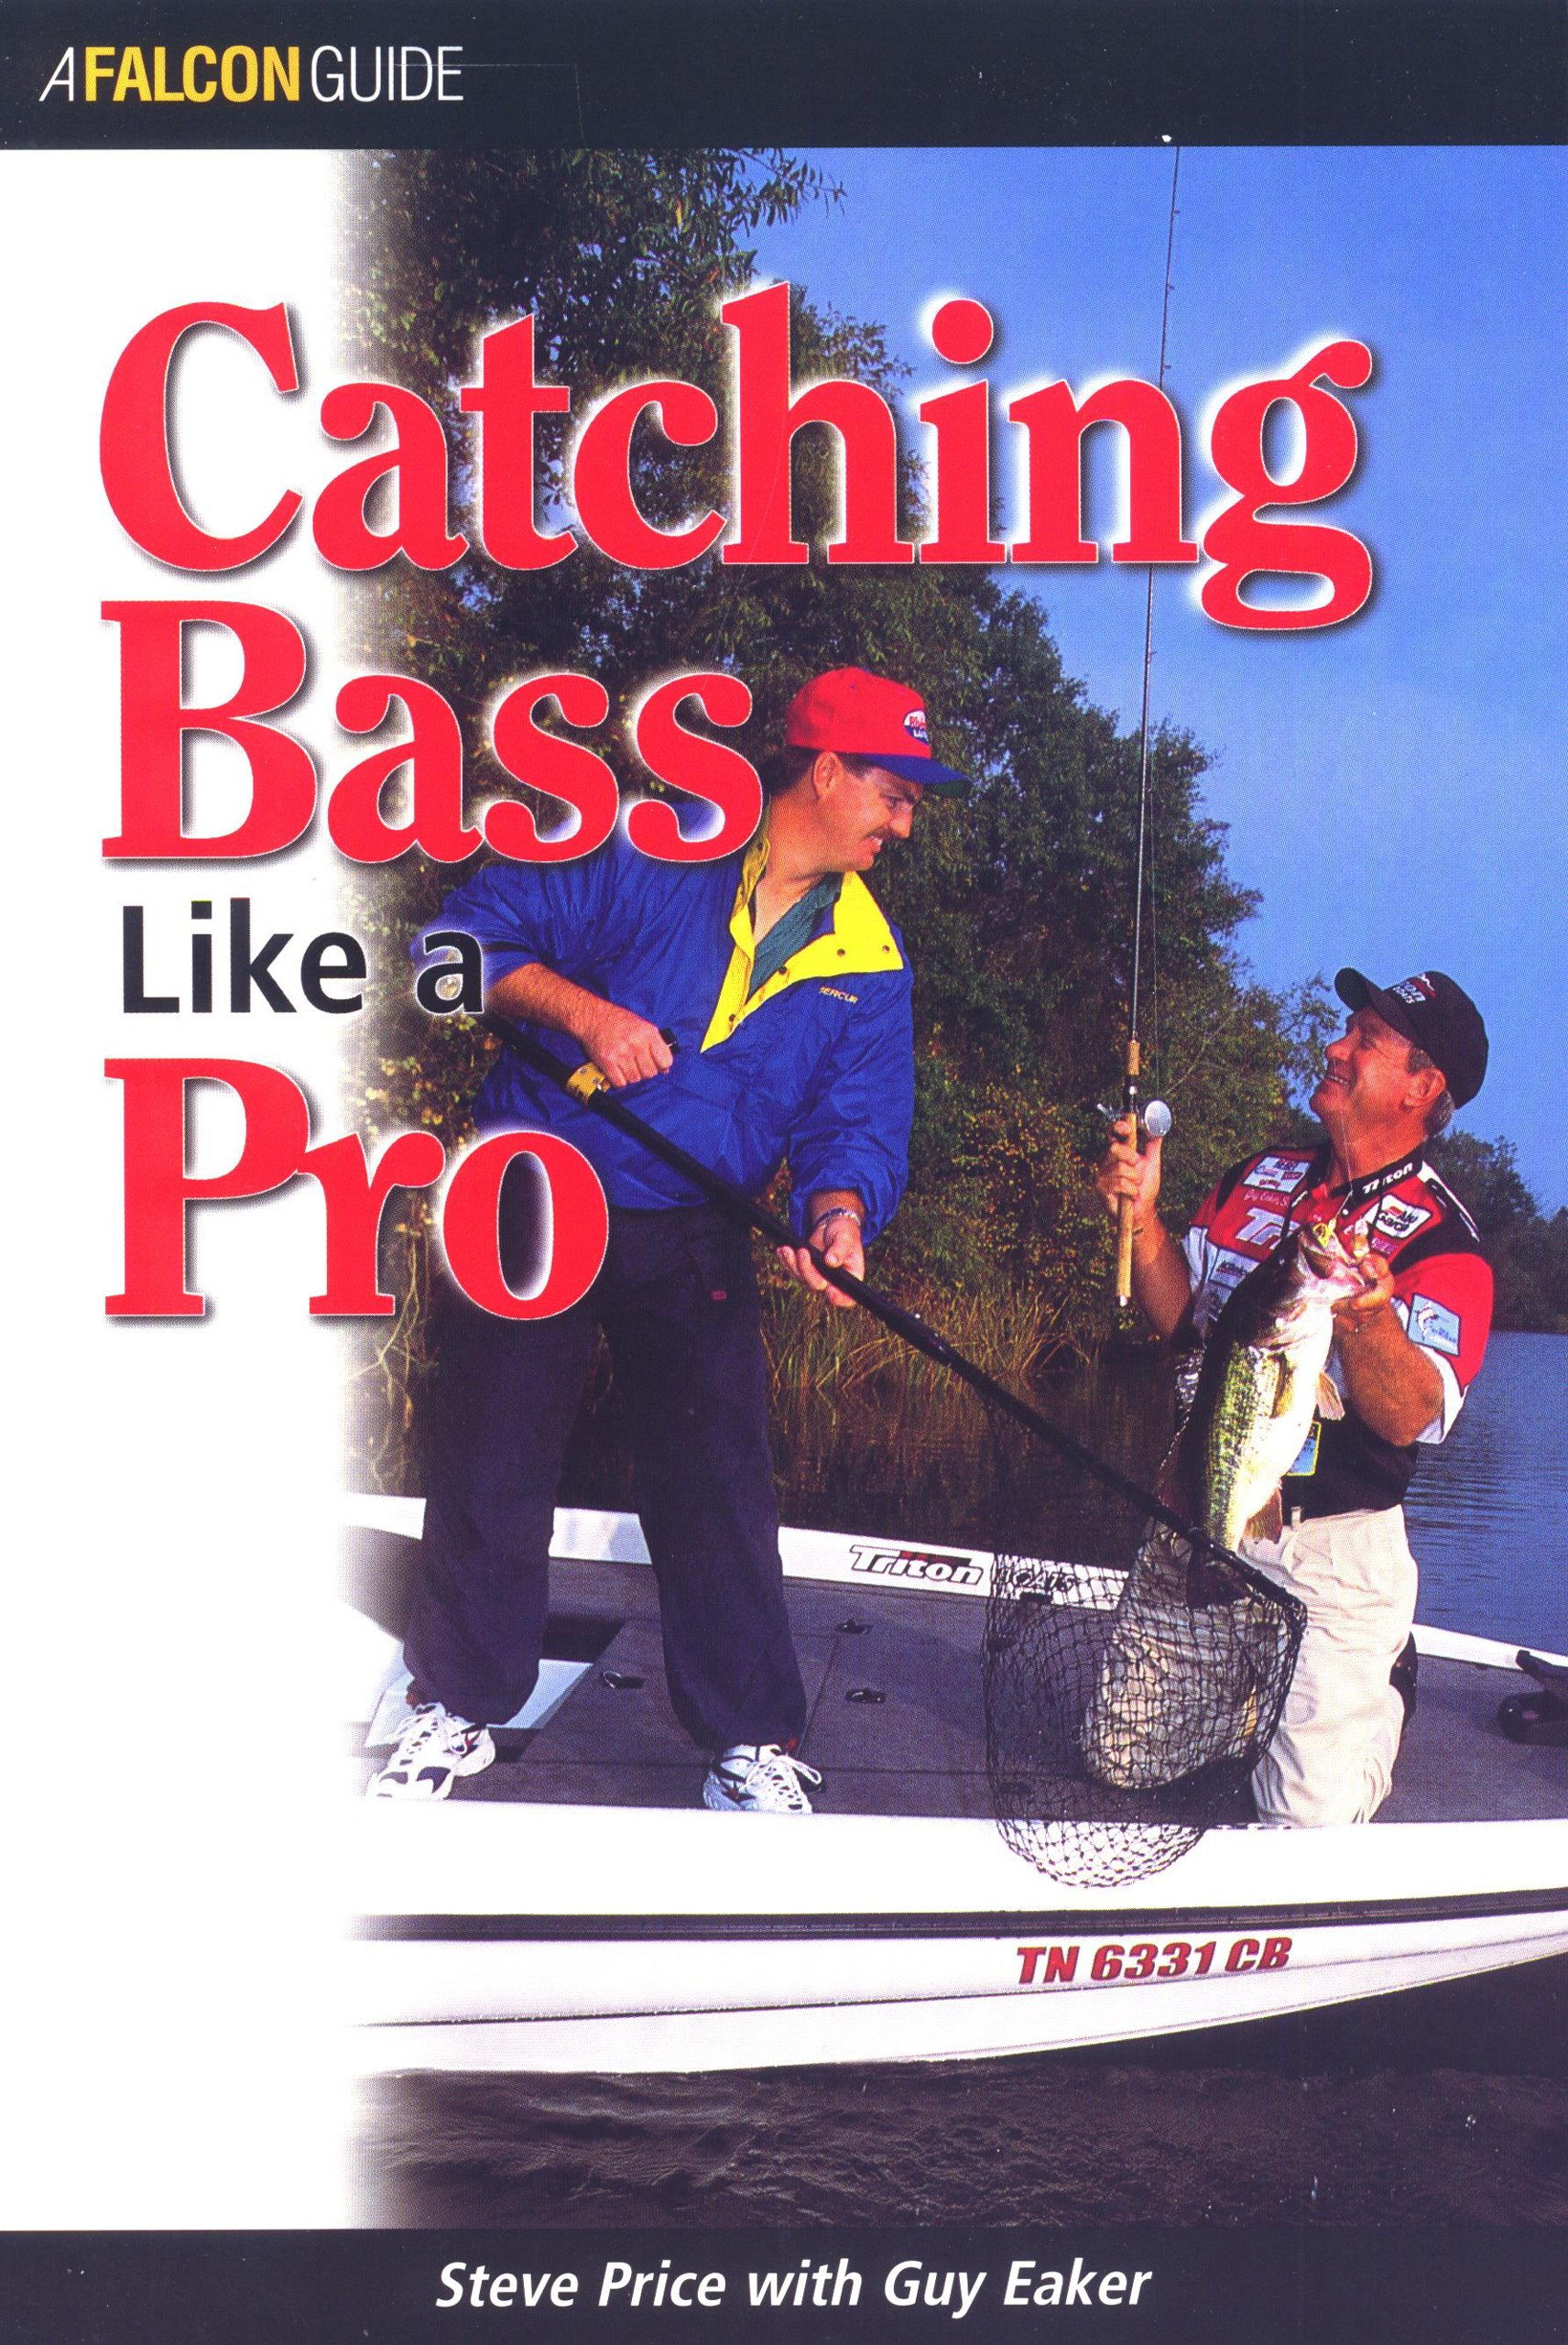 Download Catching Bass Like a Pro (Falcon Guide) ePub fb2 ebook